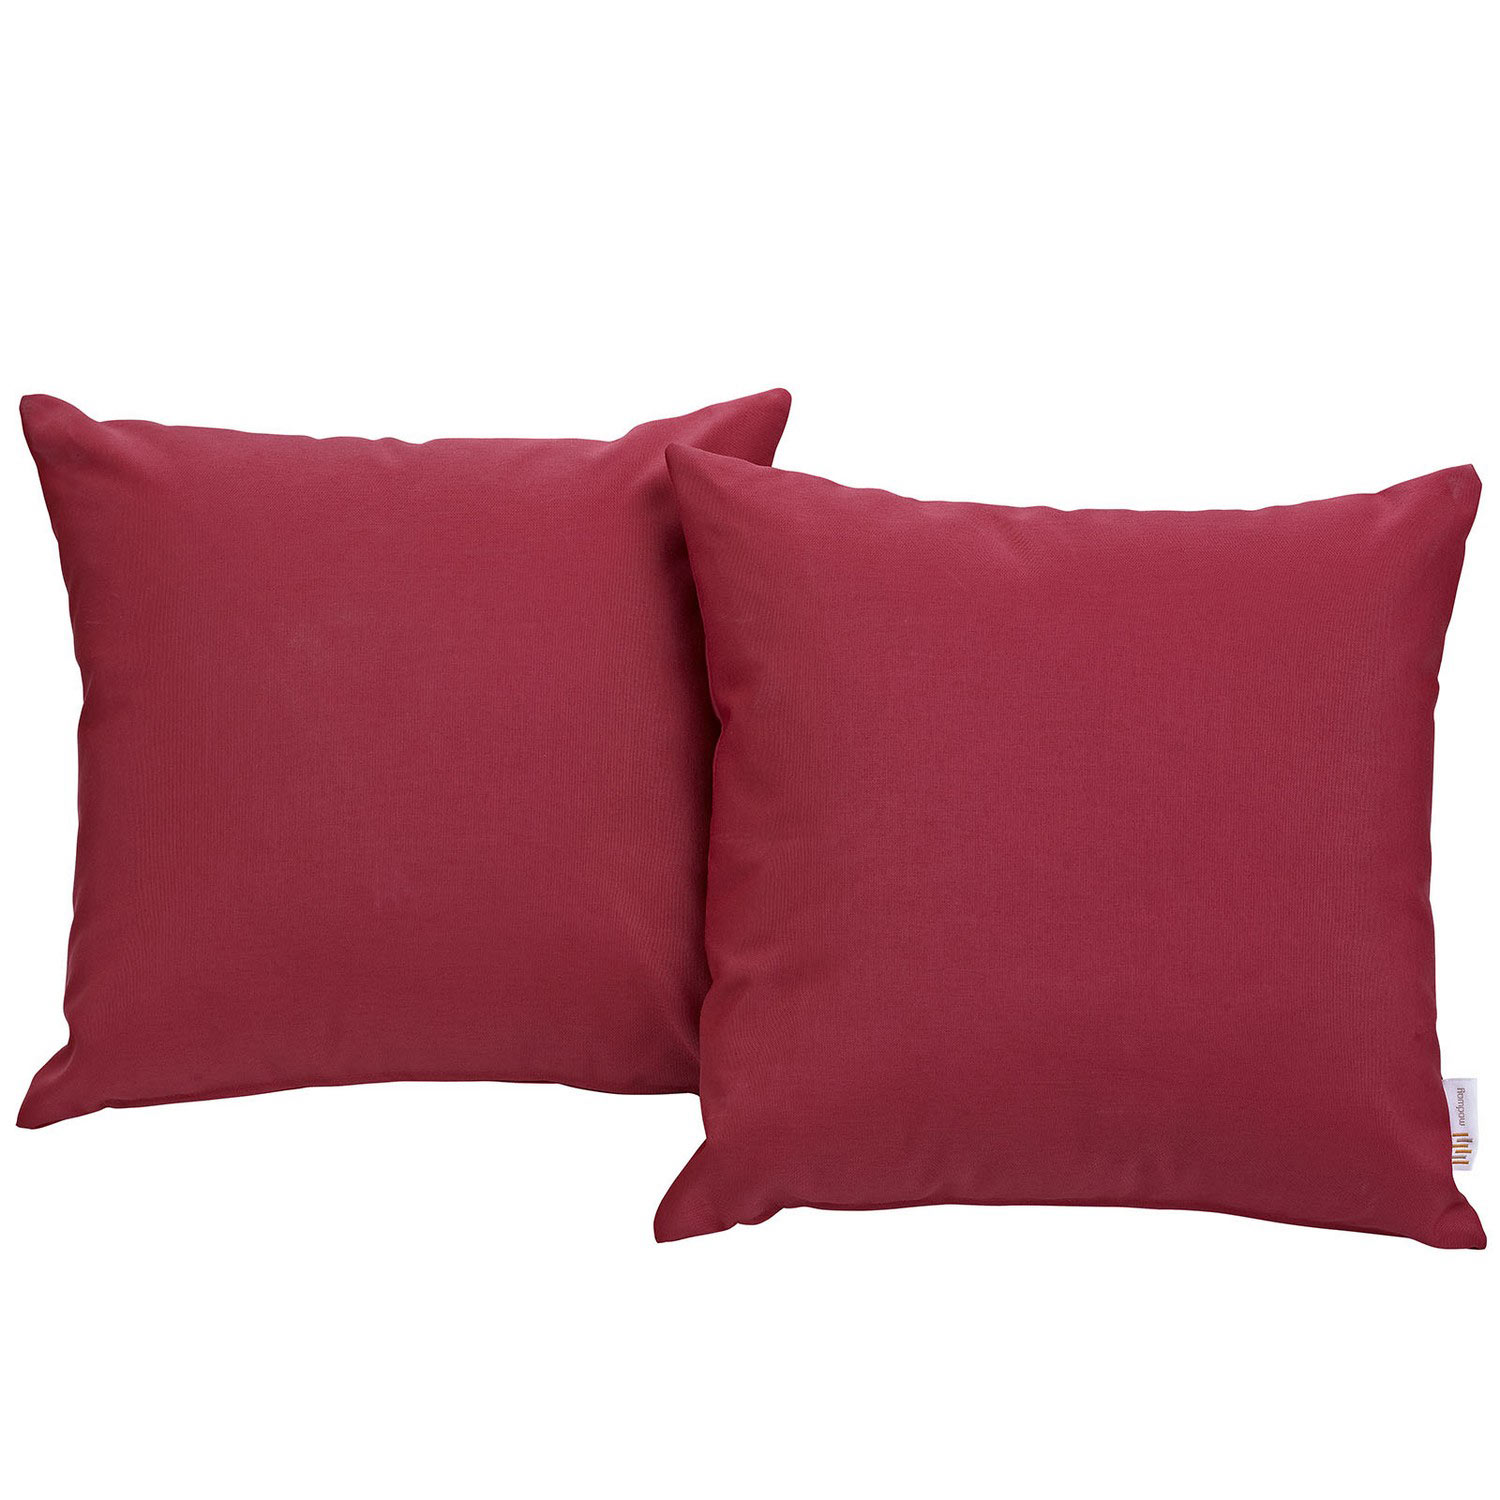 Modway Convene Two Piece Outdoor Patio Pillow Set - Red